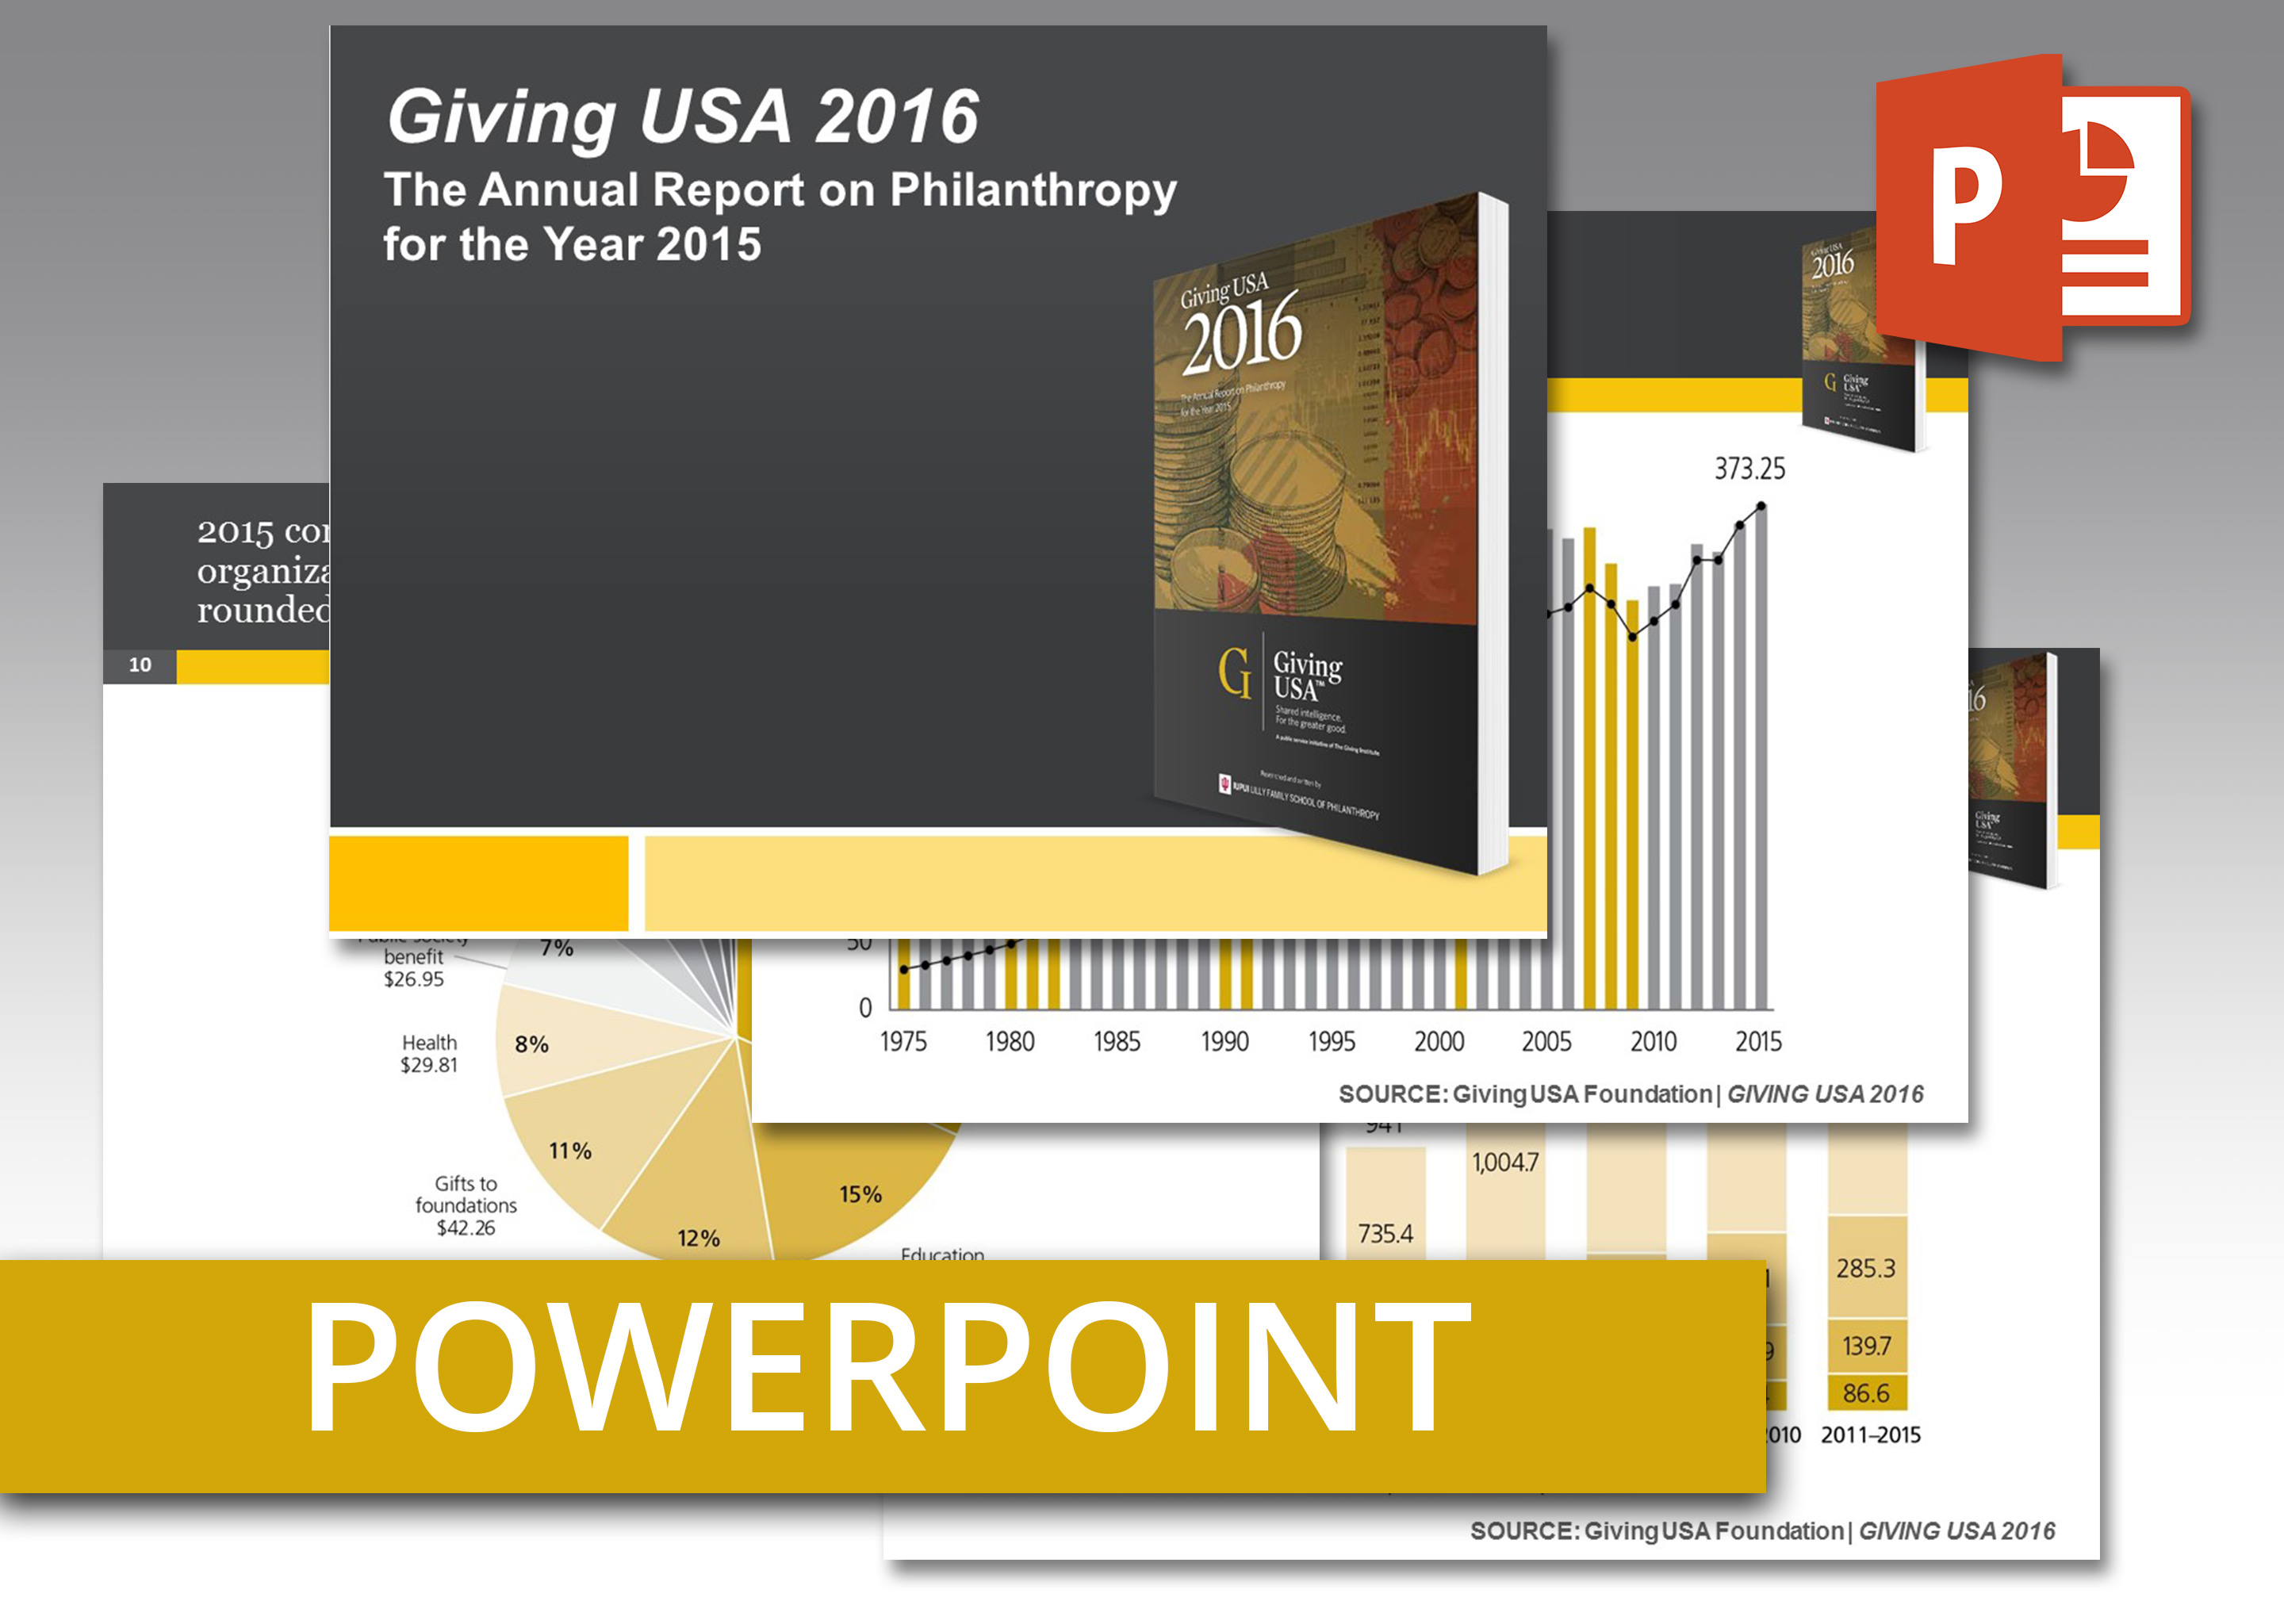 Usdgus  Stunning Giving Usa  Powerpoint An Easytouse Presentation Of Report  With Excellent Giving Usa  Powerpoint An Easytouse Presentation Of Report Findings Including Talking Points With Attractive Powerpoint In Business Also Turn Powerpoint Into A Video In Addition Harvey Balls Font In Powerpoint And Julius Caesar Powerpoint Presentation As Well As Powerpoint Free Software Additionally Email Etiquette Powerpoint Presentation From Givingusaorg With Usdgus  Excellent Giving Usa  Powerpoint An Easytouse Presentation Of Report  With Attractive Giving Usa  Powerpoint An Easytouse Presentation Of Report Findings Including Talking Points And Stunning Powerpoint In Business Also Turn Powerpoint Into A Video In Addition Harvey Balls Font In Powerpoint From Givingusaorg